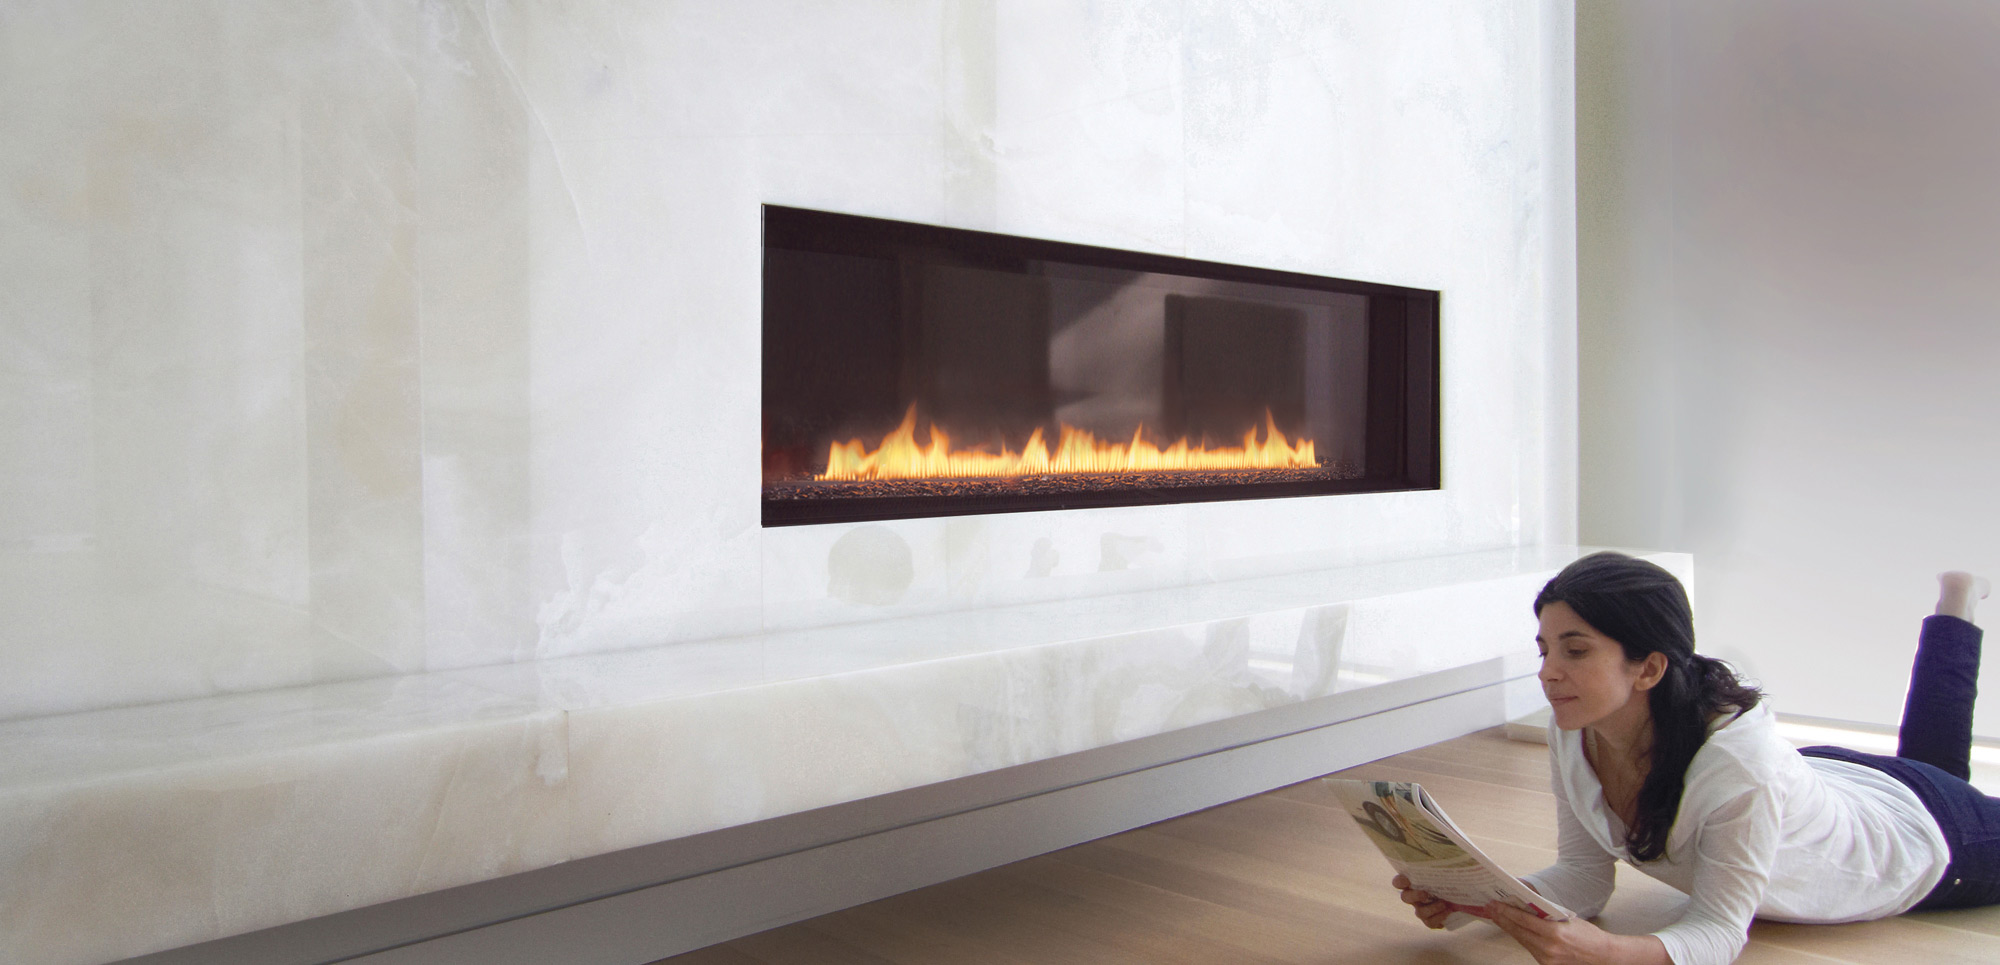 07 07 2015 18 06 2015 Fire Ribbon Direct Vent Single Vu 6ftC Homepage Carousel 6 Top Result 50 Unique Best Wood Fireplace Insert